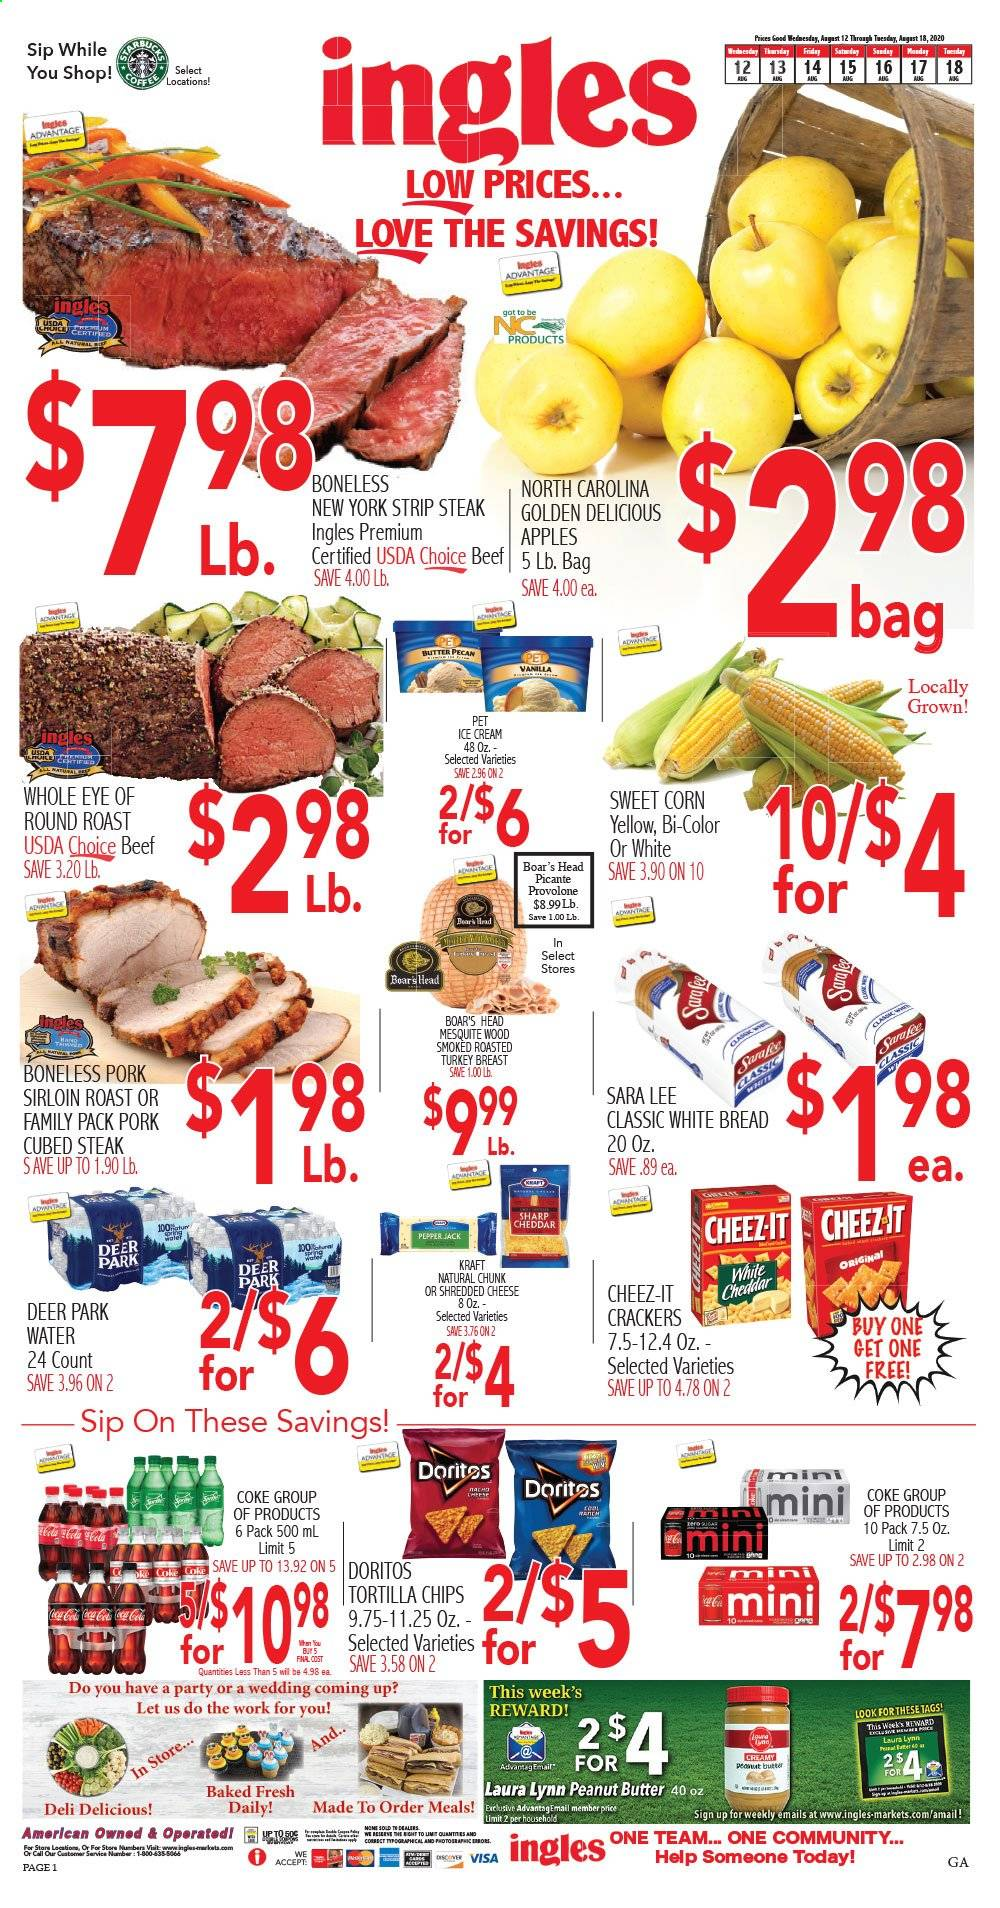 Ingles Flyer - 08.12.2020 - 08.18.2020 - Sales products - deer, corn, golden delicious apples, bread, white bread, shredded cheese, cheddar, Pepper Jack cheese, cheese, ice cream, crackers, Doritos, tortilla chips, chips, pepper, peanut butter, Coca-Cola, water, turkey, turkey breast, beef meat, steak, eye of round, pork meat. Page 1.